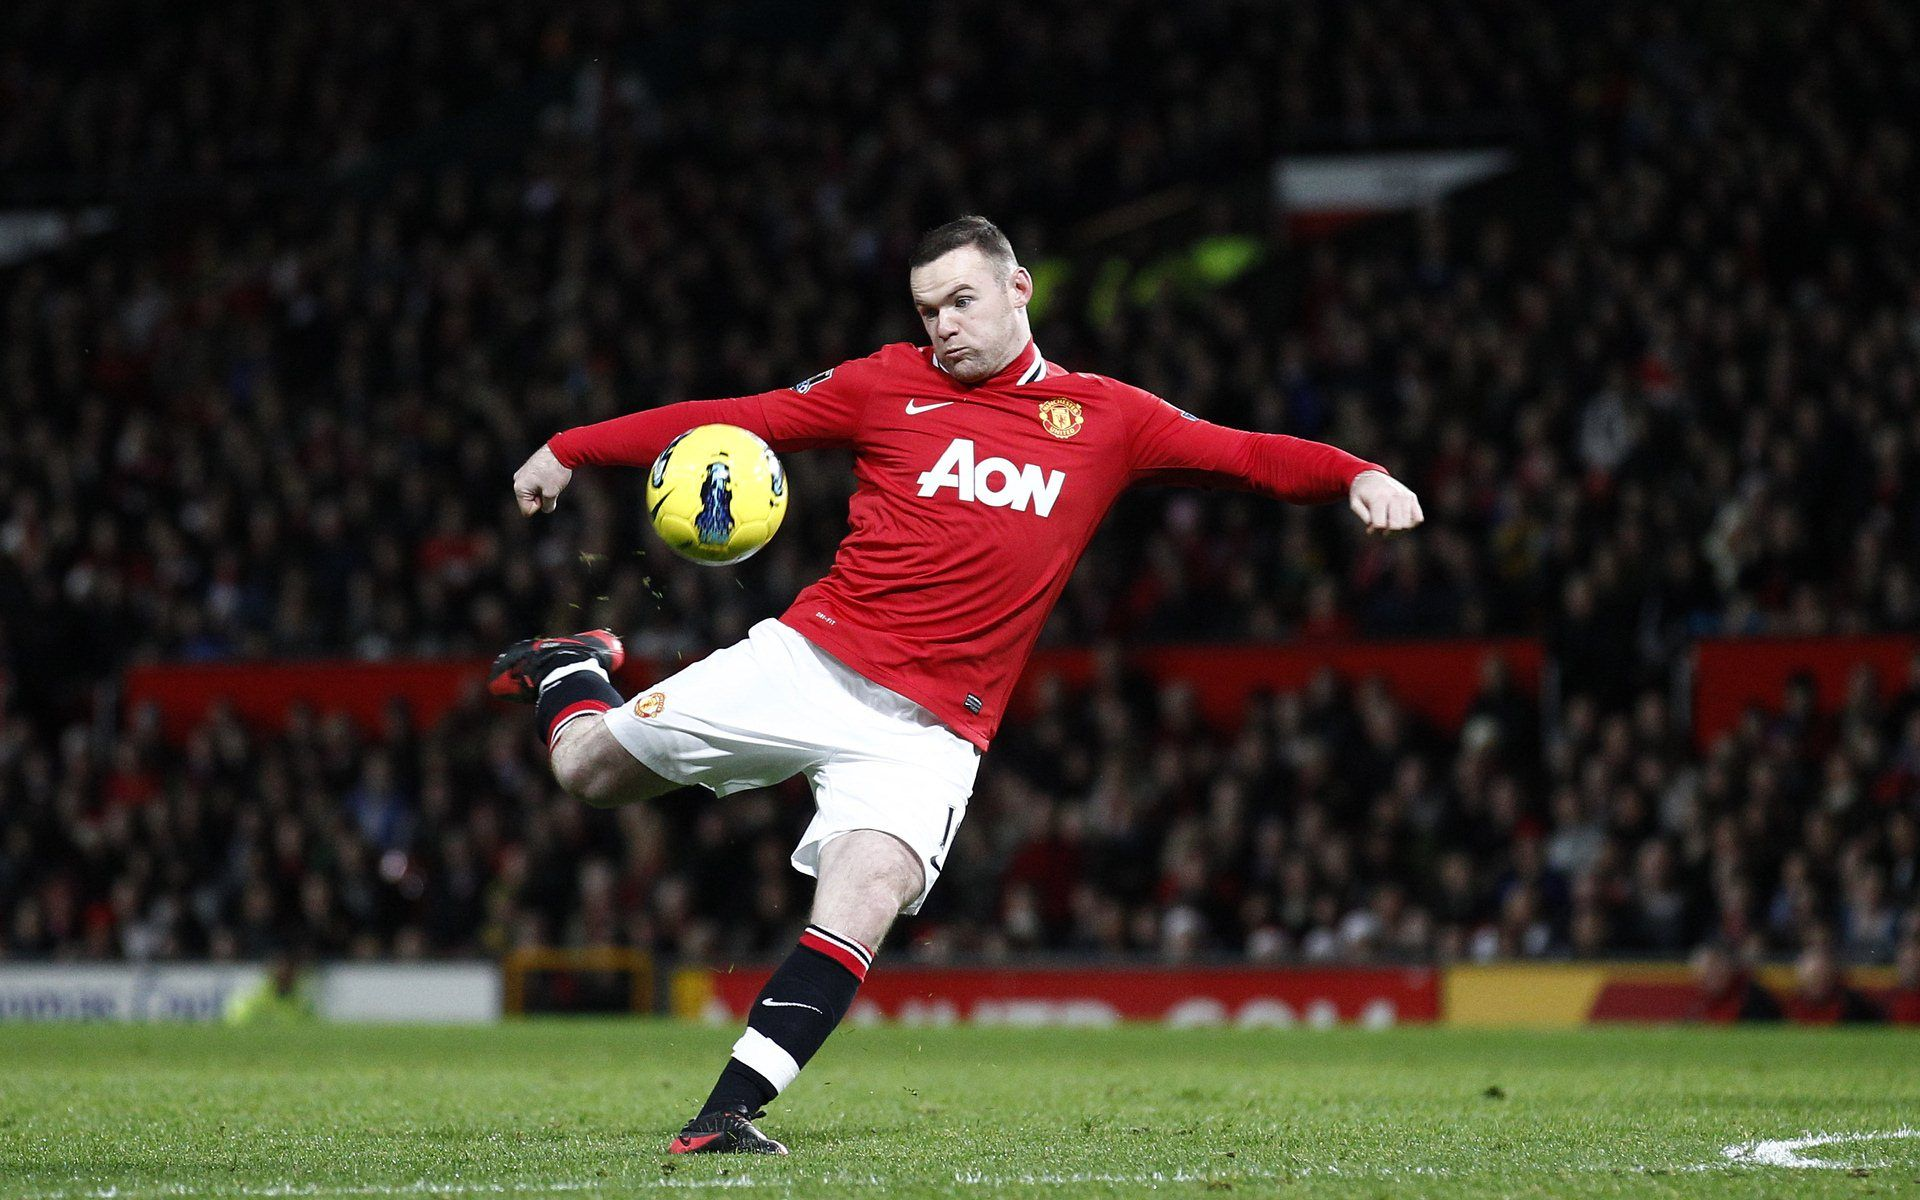 Get Nice Manchester United Wallpapers Hd Wallpaper 4. Wayne Rooney -  Well, there is no necessity to introduce this player to you. He is one of the best strikers. Some of his goals leaves the viewers dumb-strucked as he is known for scoring amazing goals. His passing and stamina makes him one of the best in the world. He has scored 214 goals in 440 matches in the colours of United. ♥